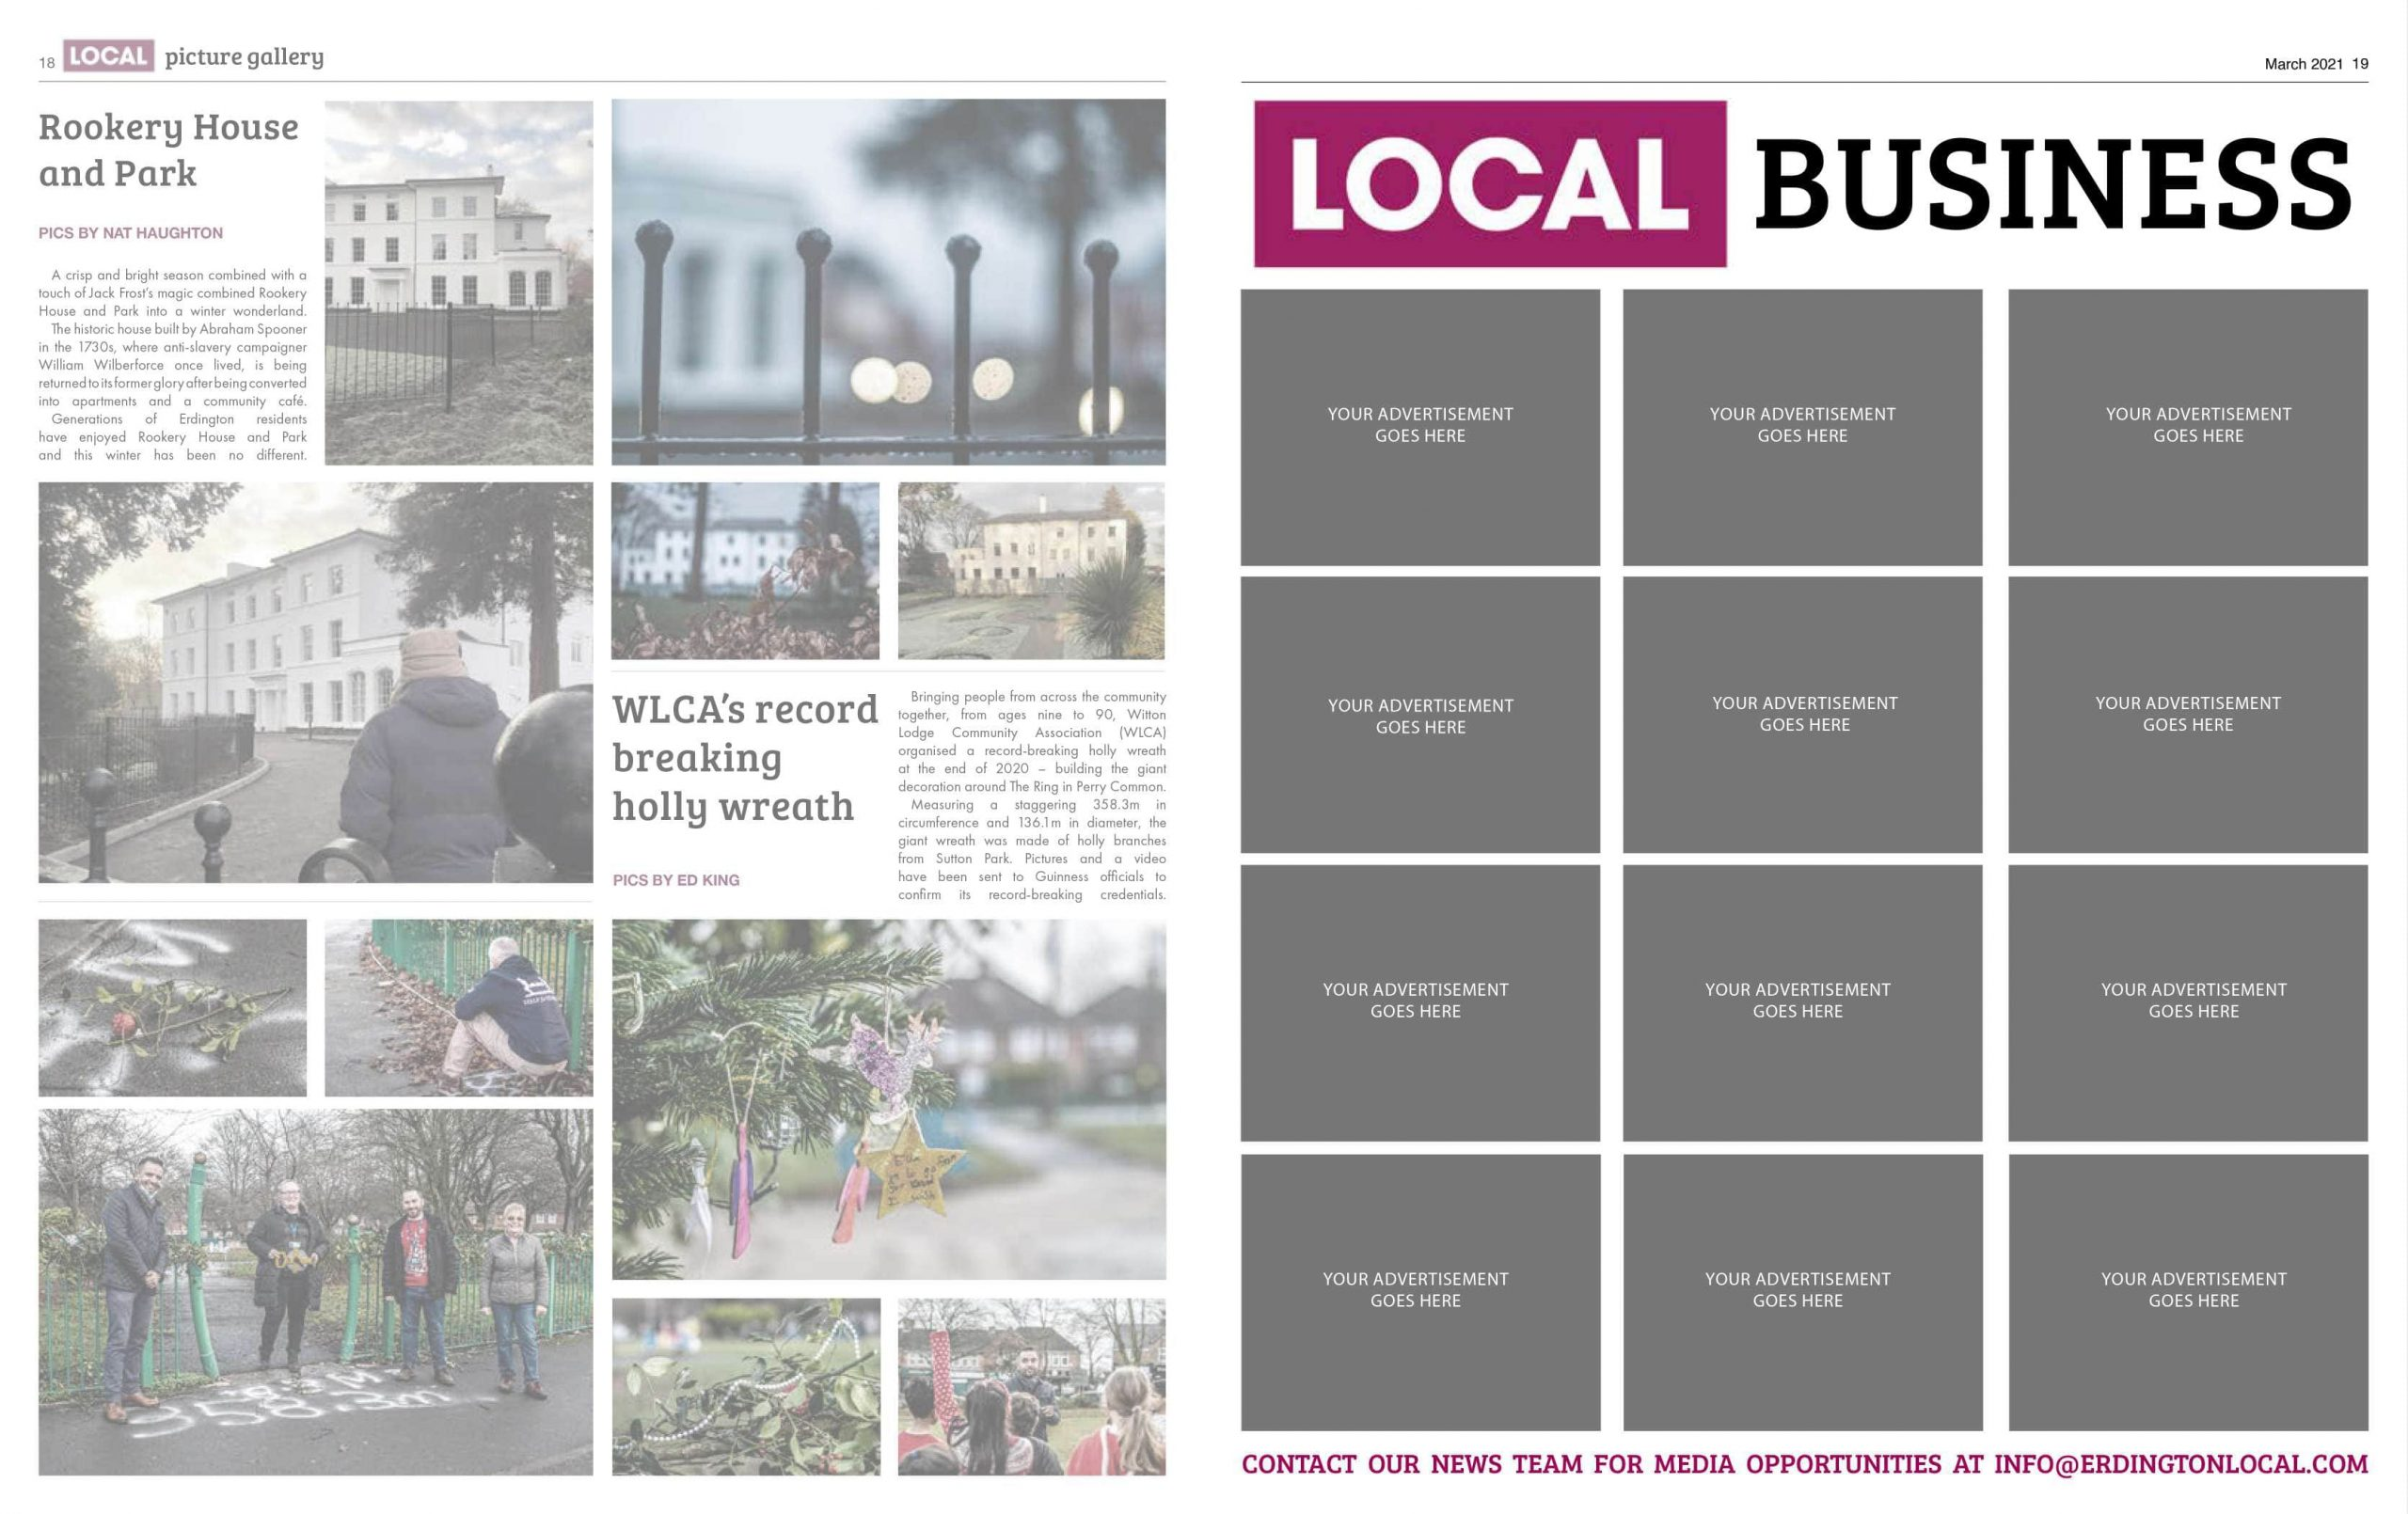 Erdington Local - LOCAL BUSINESS (16th page adverts - landscape) FADED_compressed_page-0001-min